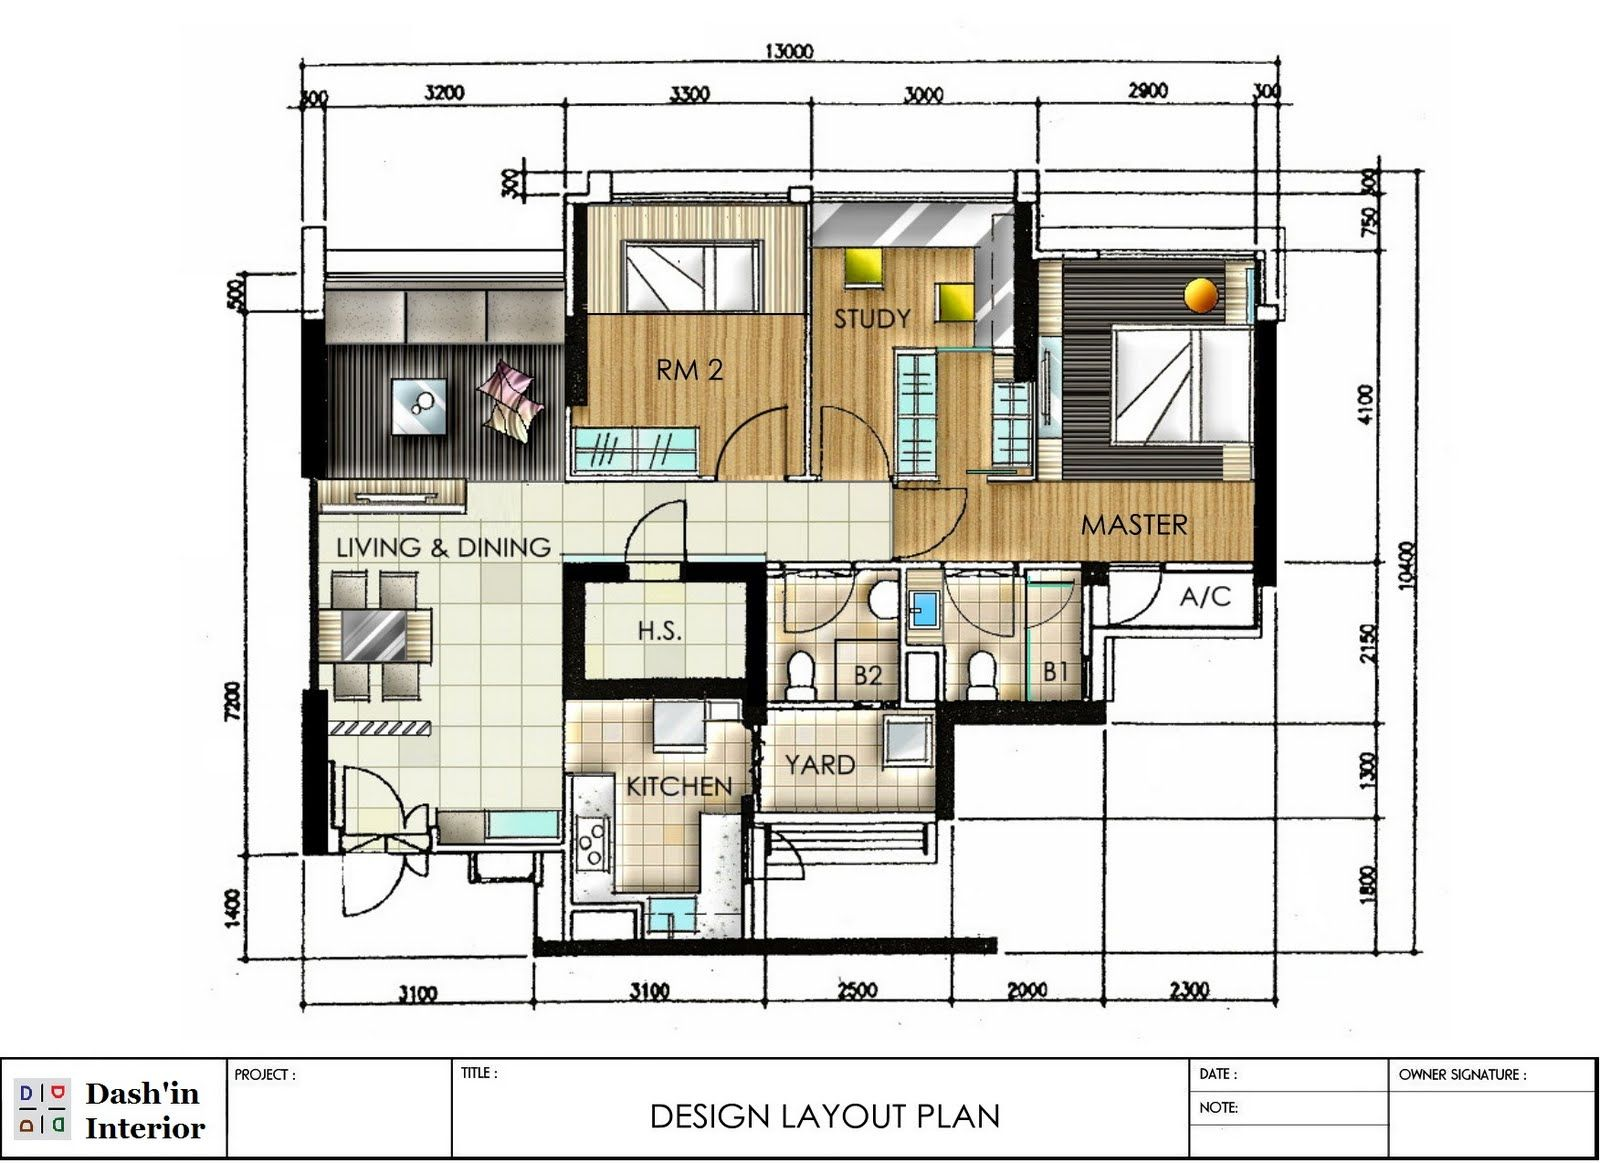 dash interior hand drawn designs floor plan layout that